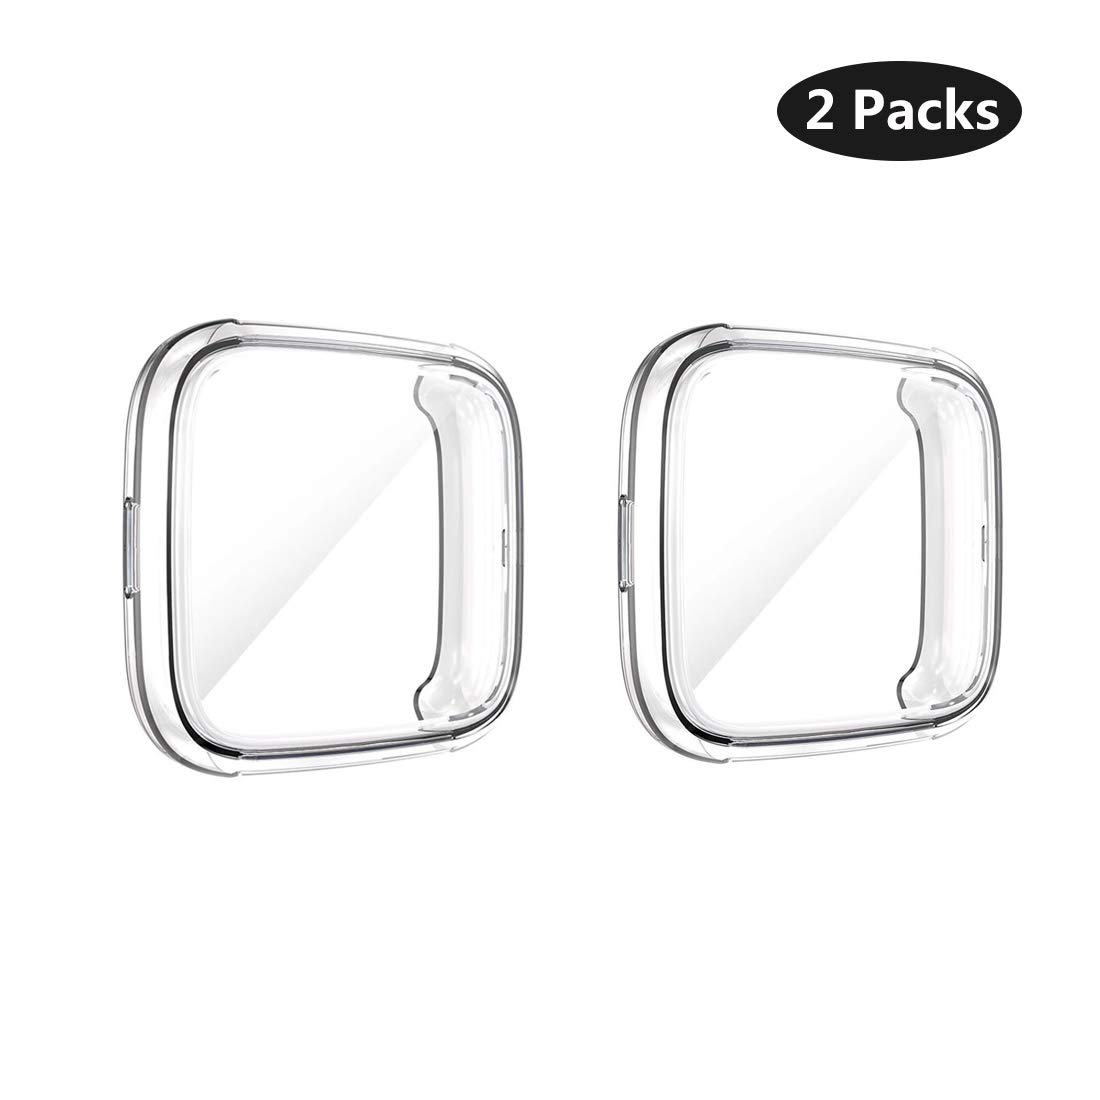 UCMDA Case Screen Protector for Fitbit Versa 2, Soft TPU Full Protective Cover Case for Fitbit Versa 2-Clear + Clear